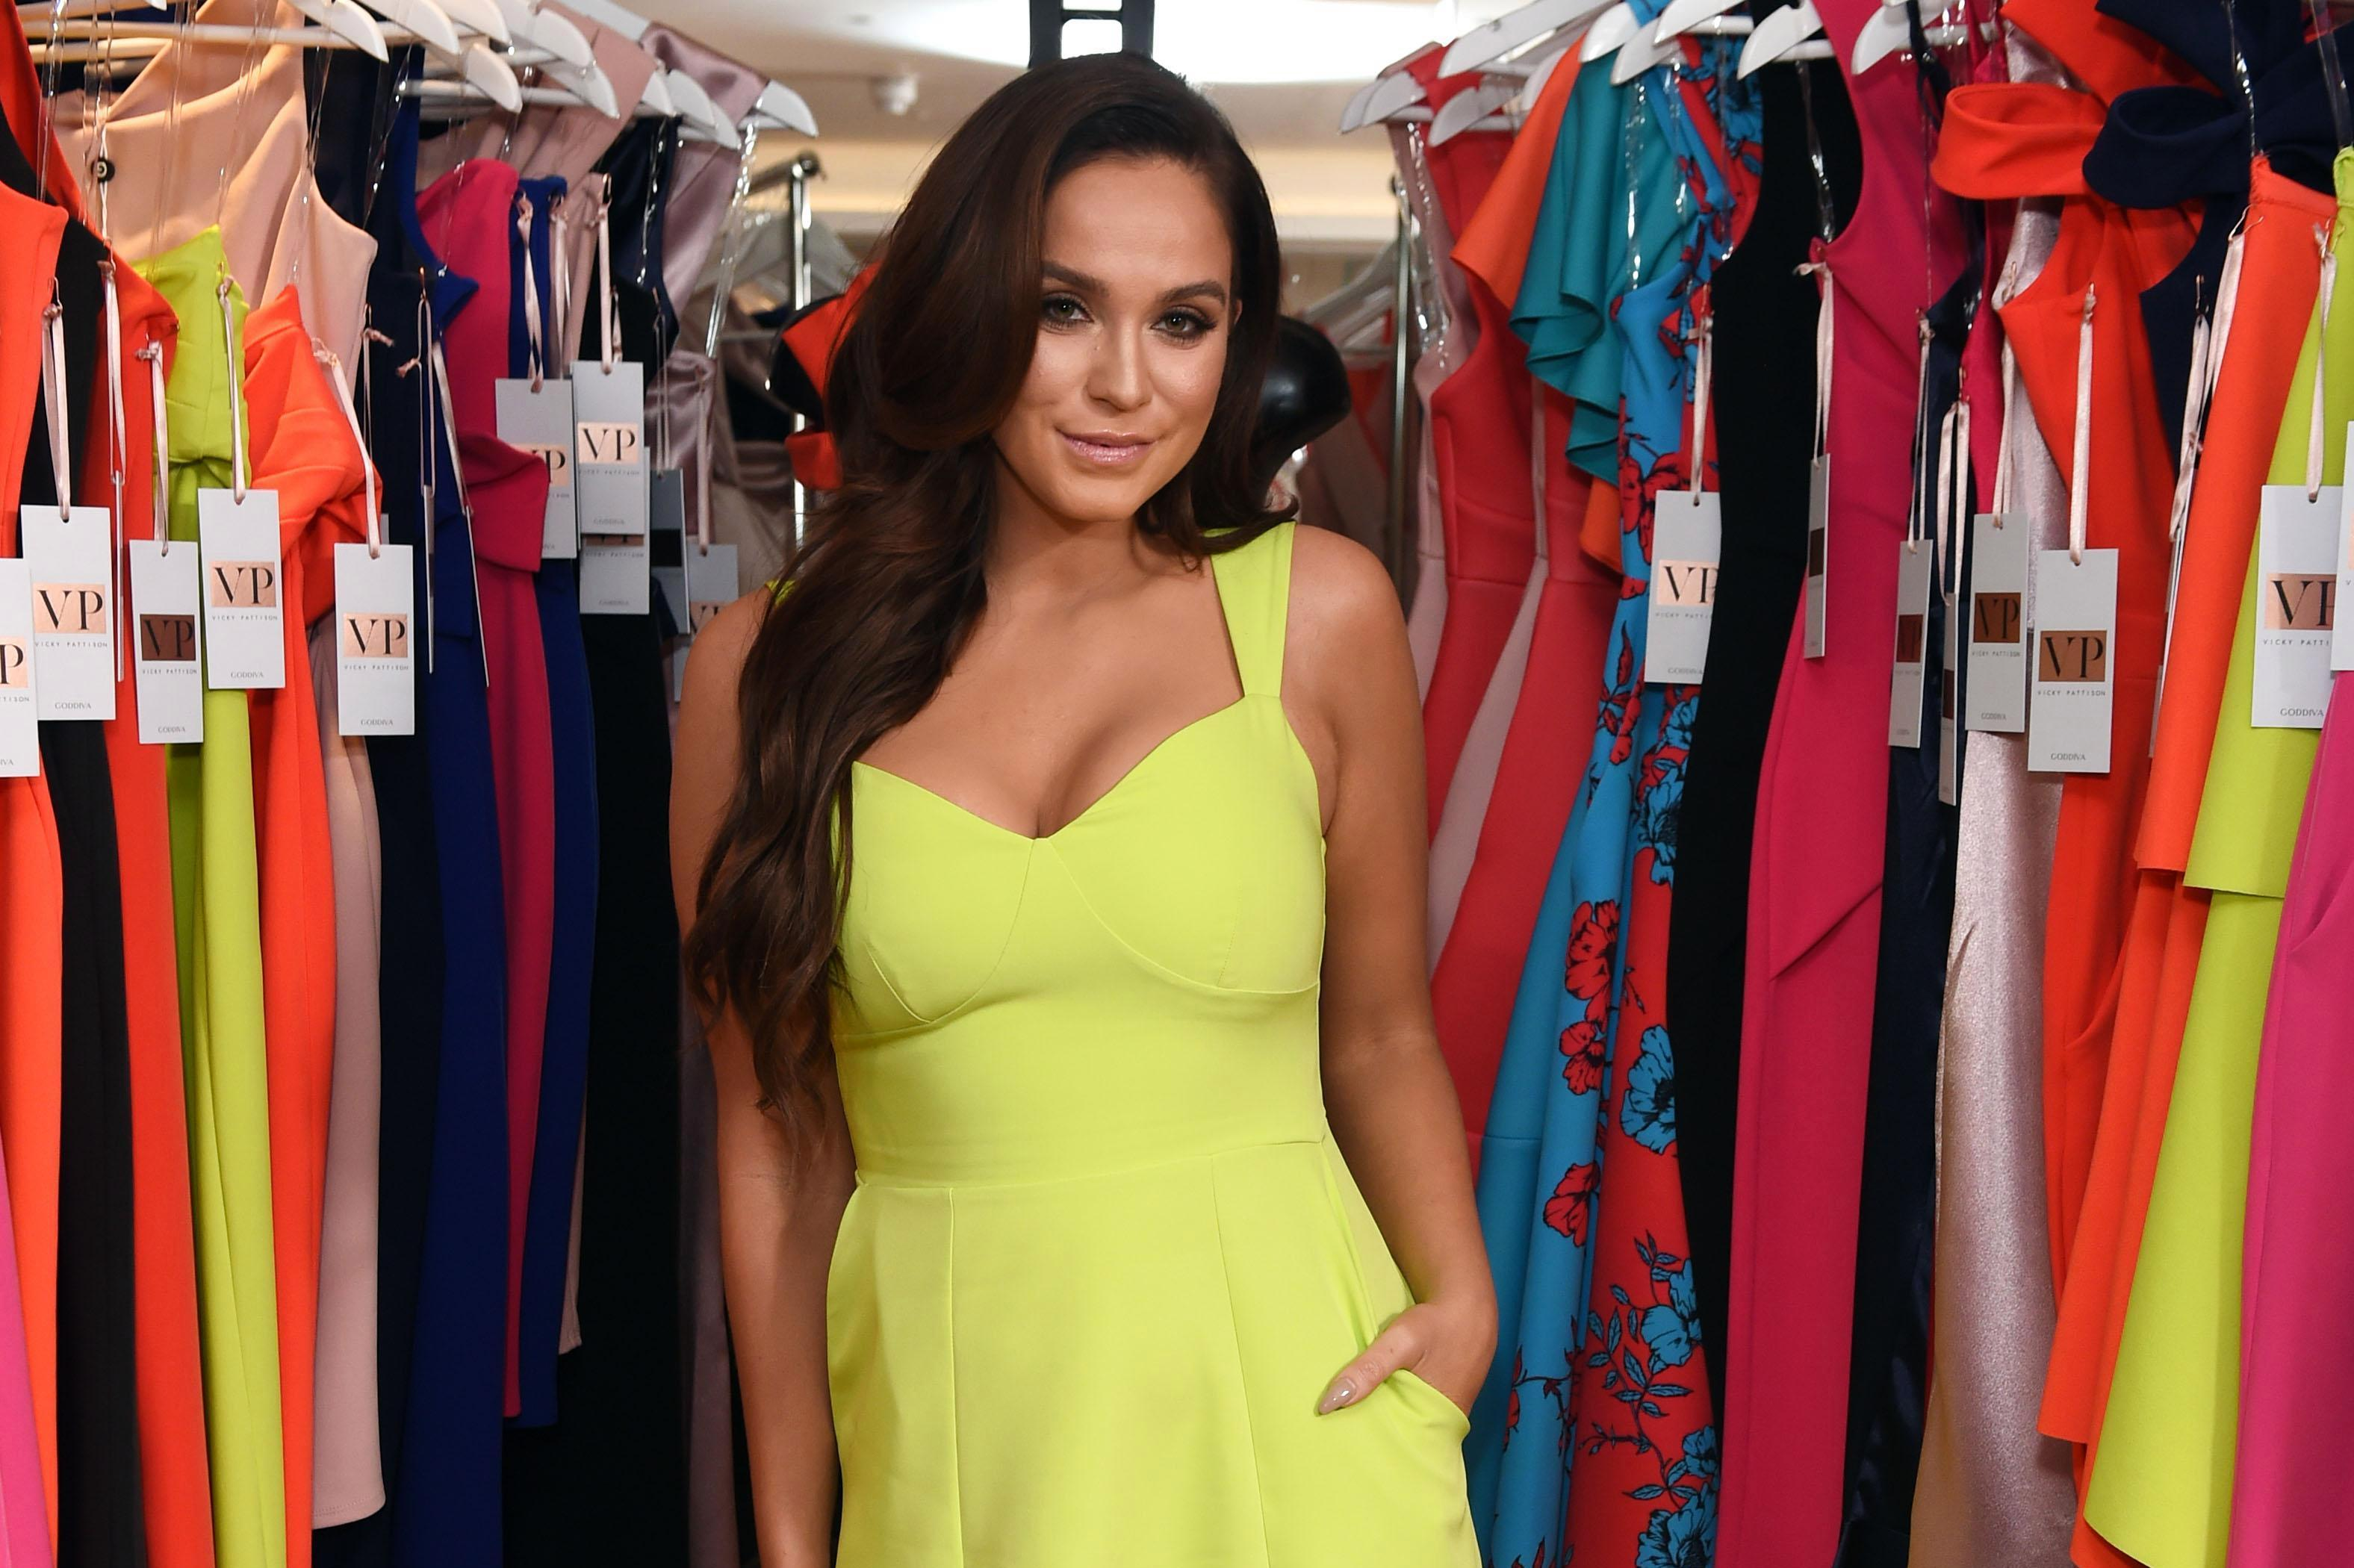 Vicky Pattison confirms she's dating Ercan Ramadan just three months after dumping fiancé John Noble